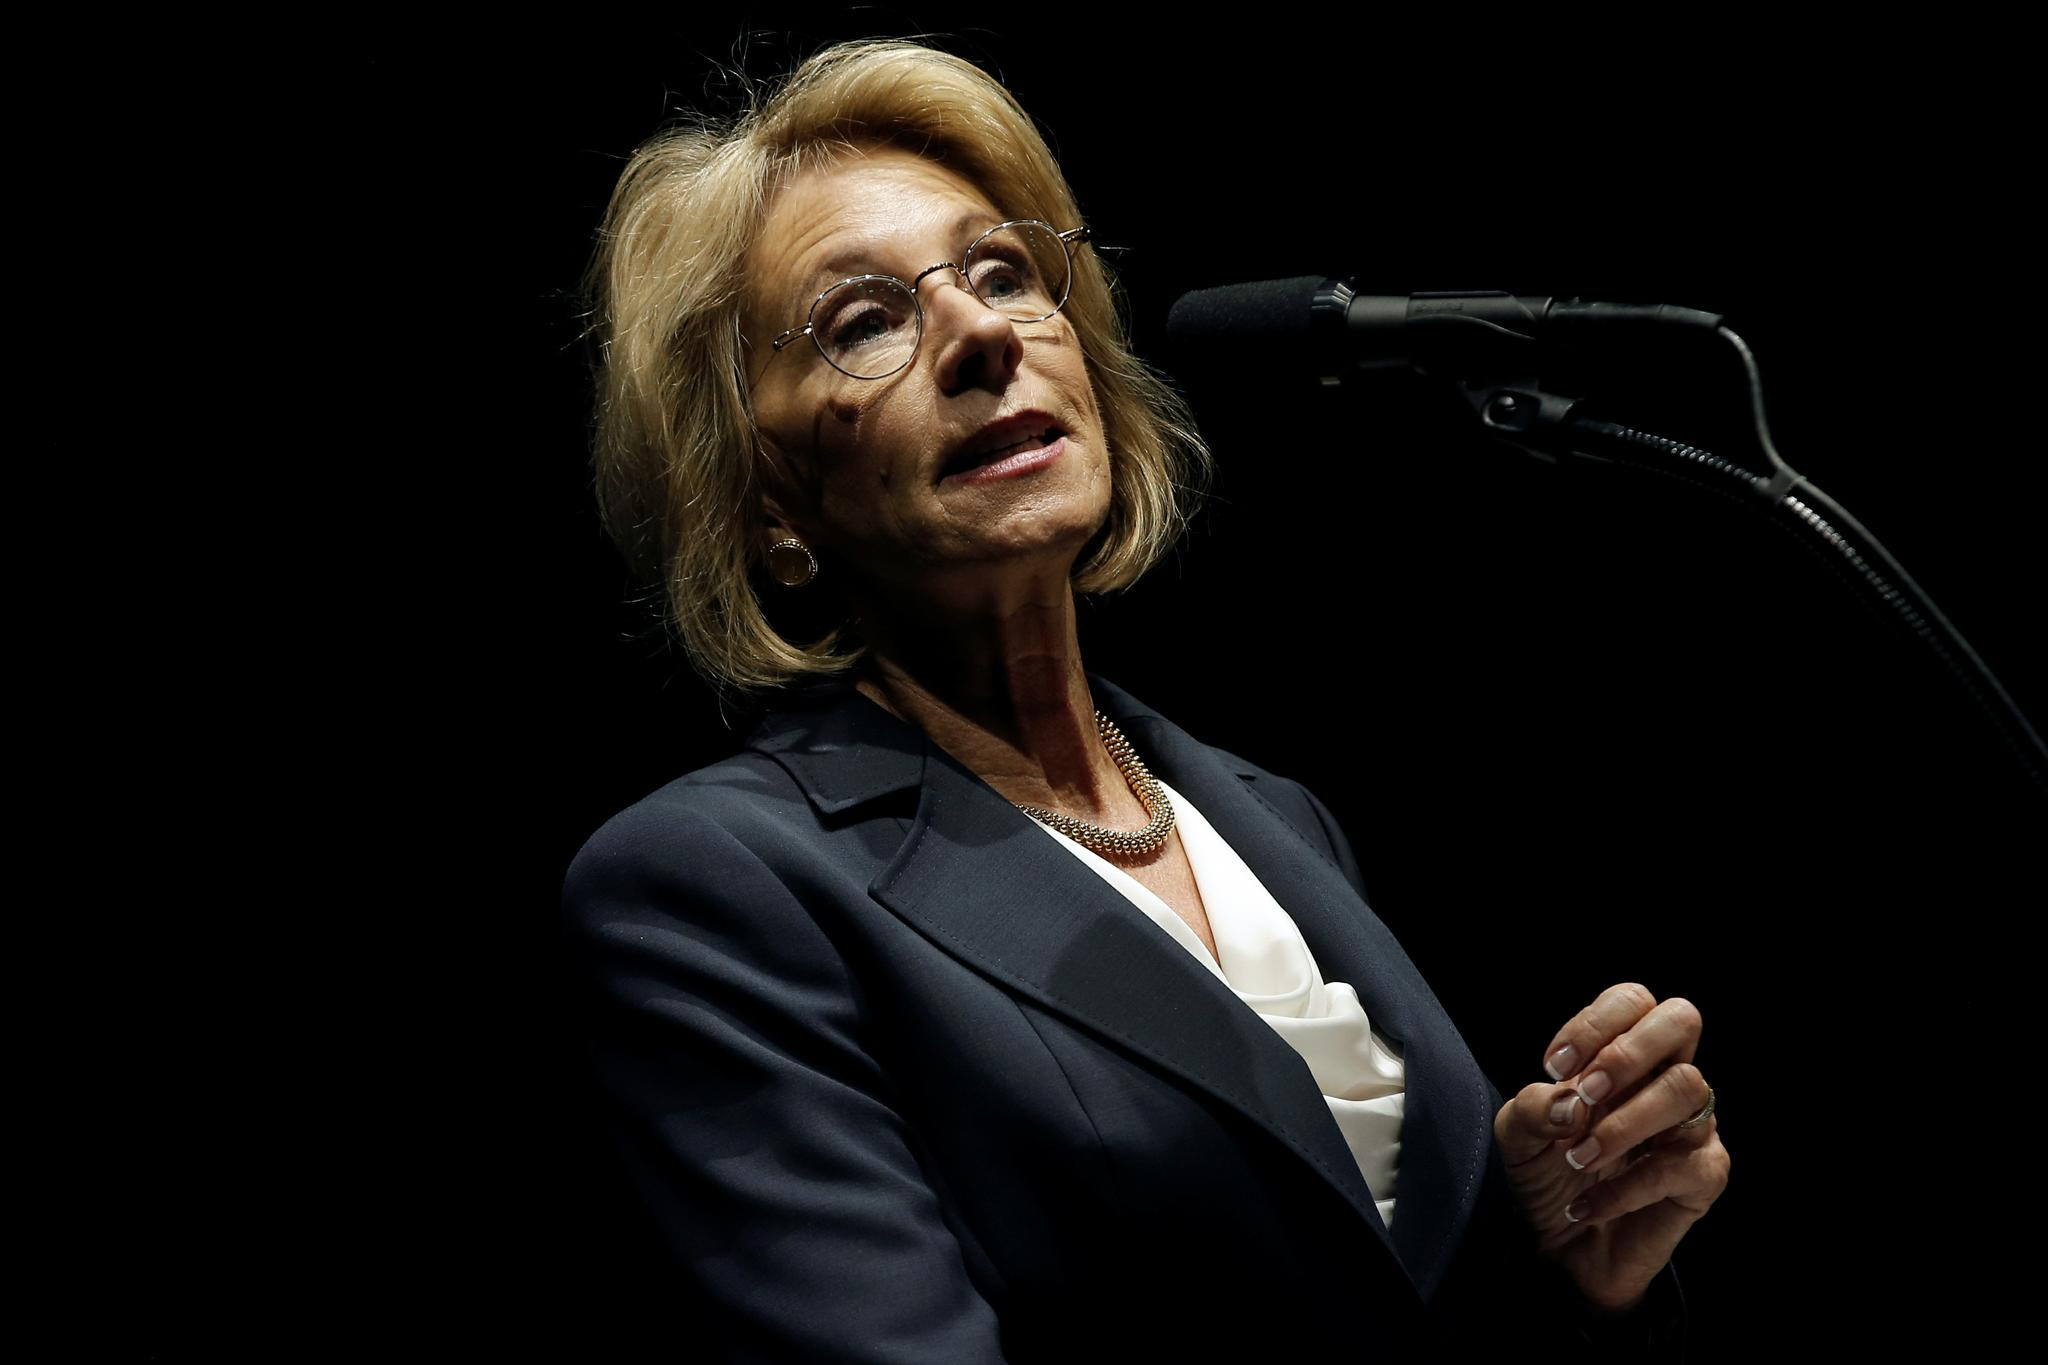 Betsy DeVos, a billionaire Republican from Michigan, has been nominated to head the federal Education Department.